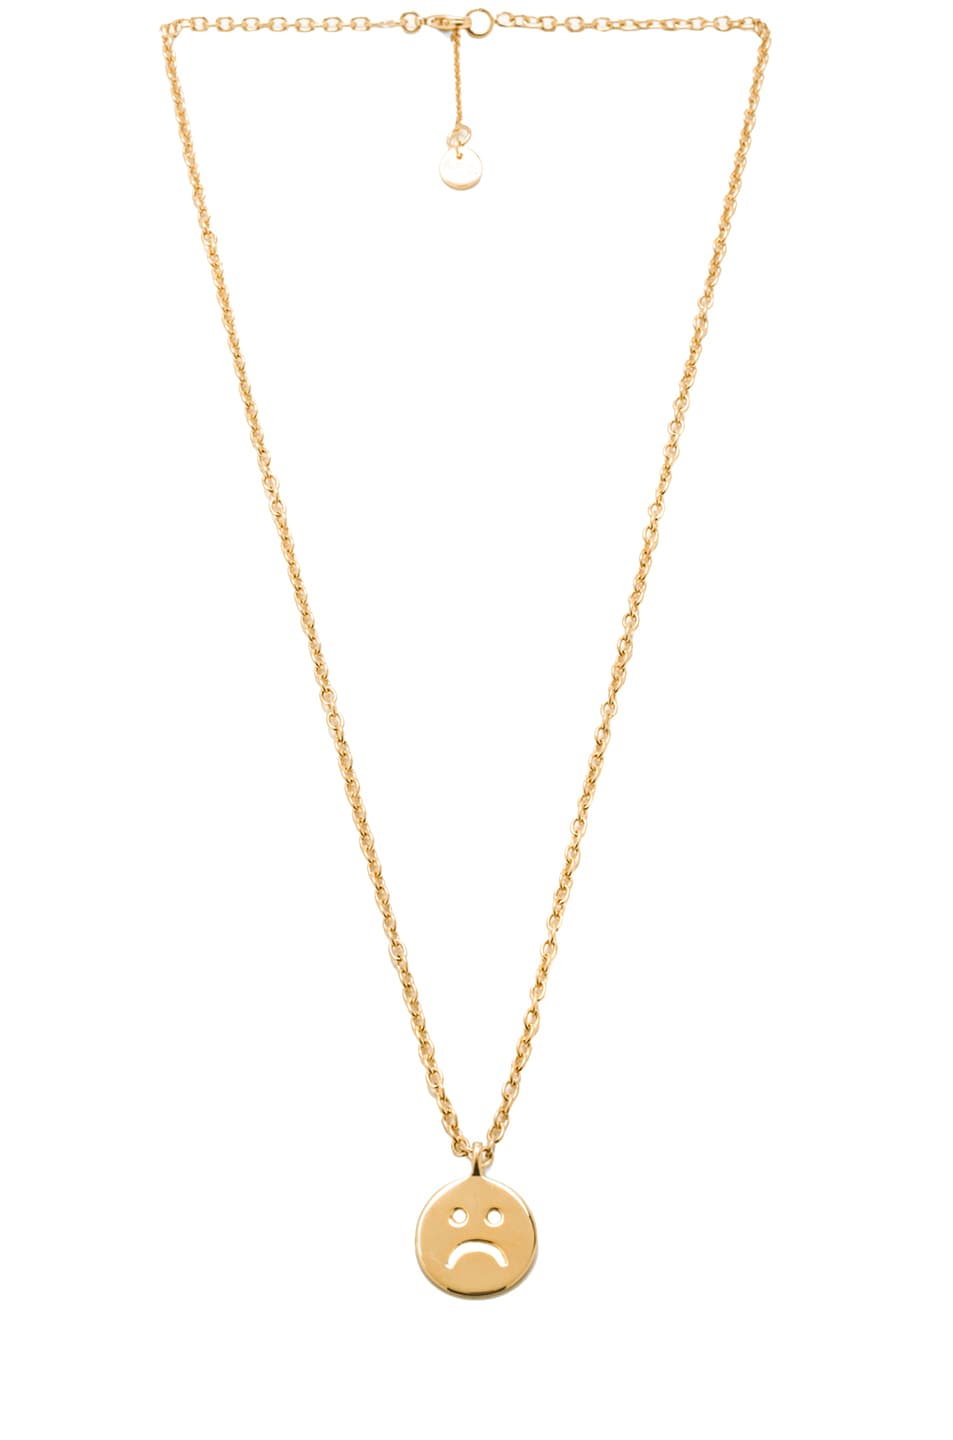 c p jewerly apc rob a footshop gold necklace uk en